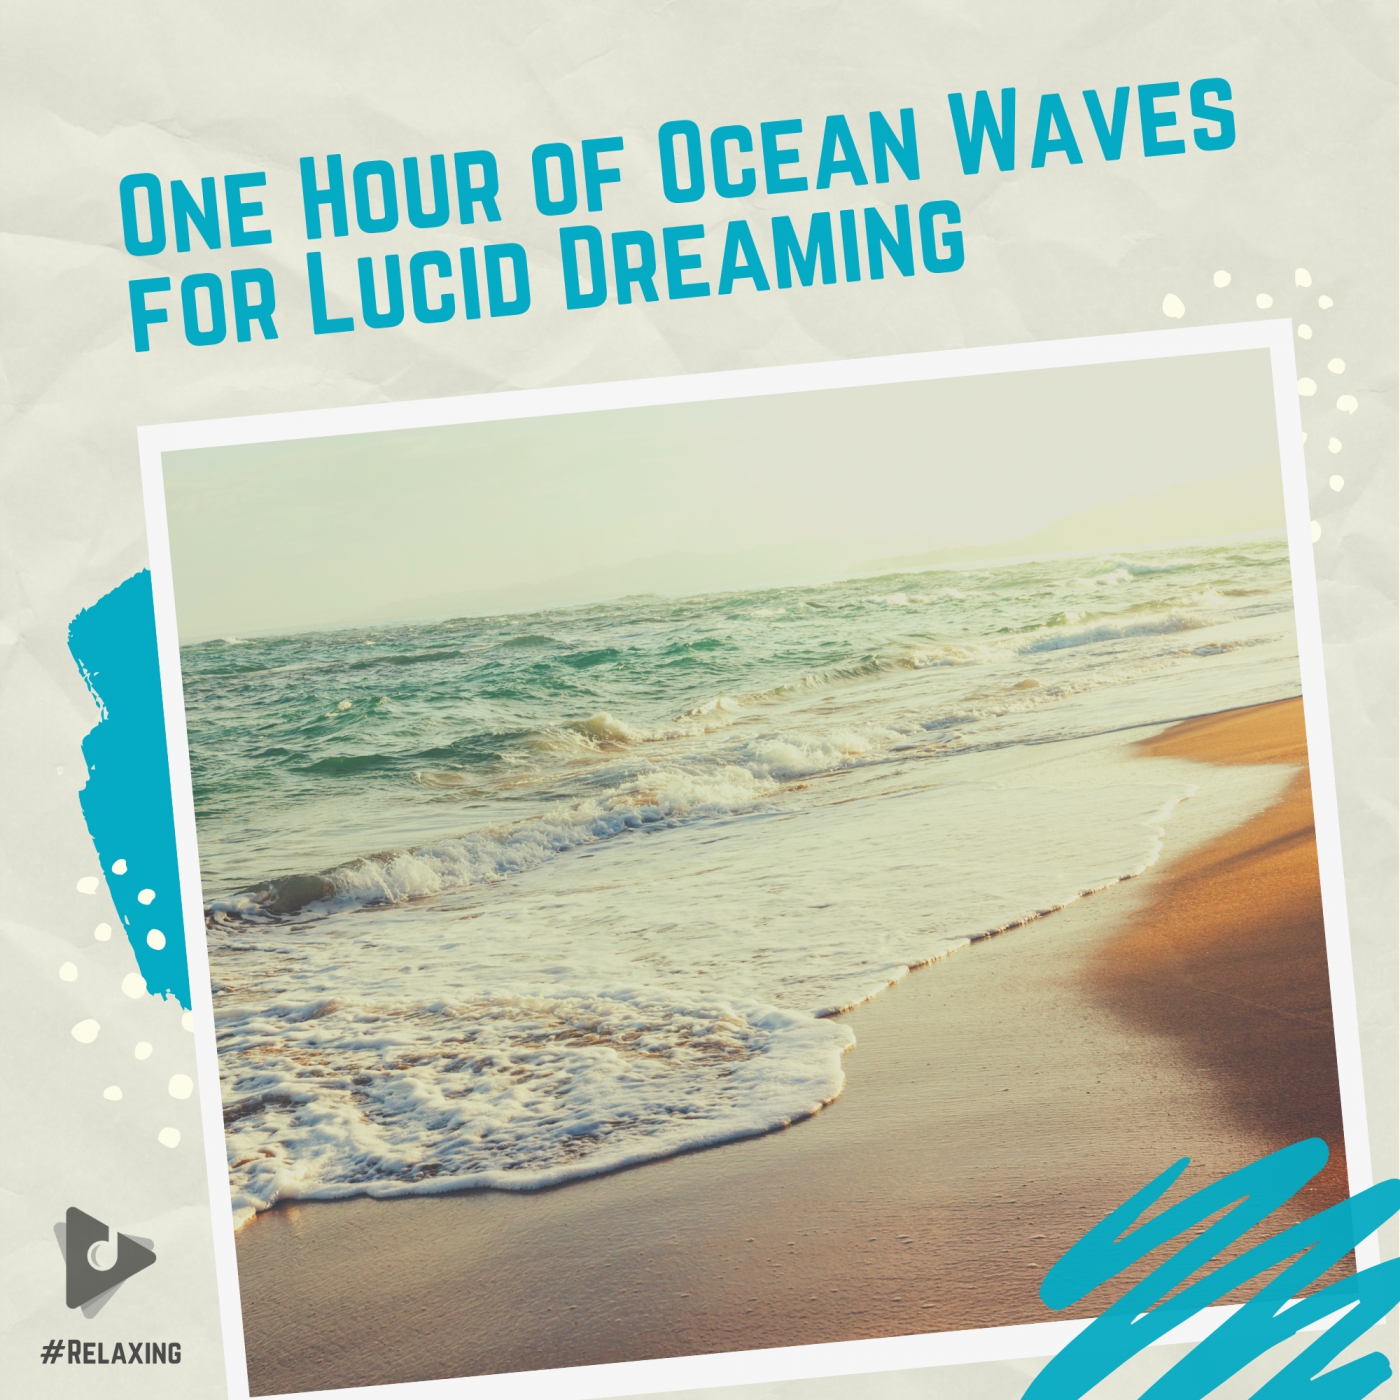 One Hour of Ocean Waves for Lucid Dreaming